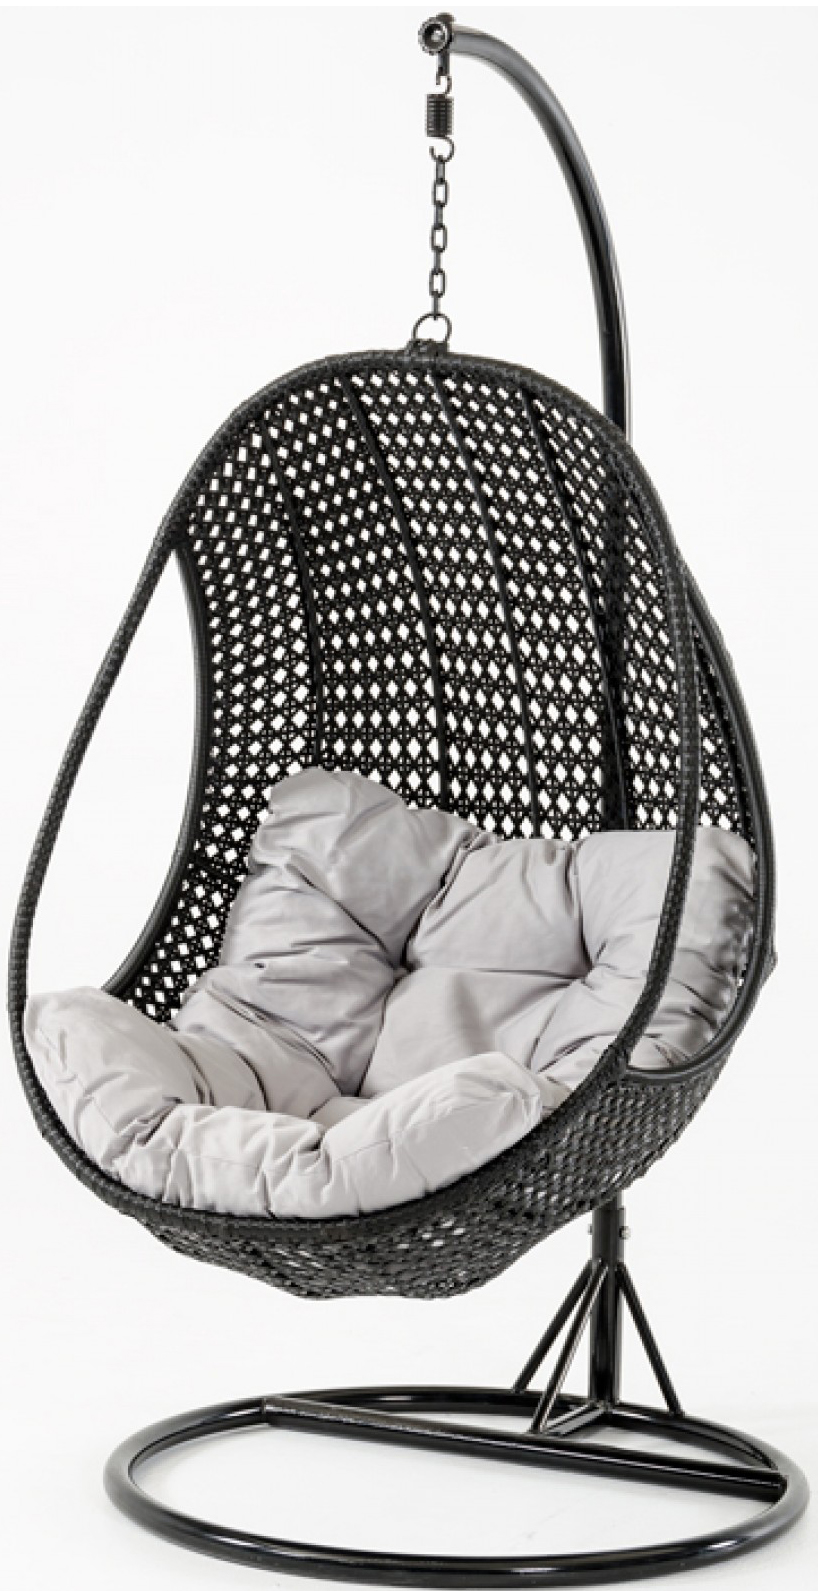 Find A Deal On A Hanging Chair For Outdoors At AdvancedInteriorDesigns.com  ...